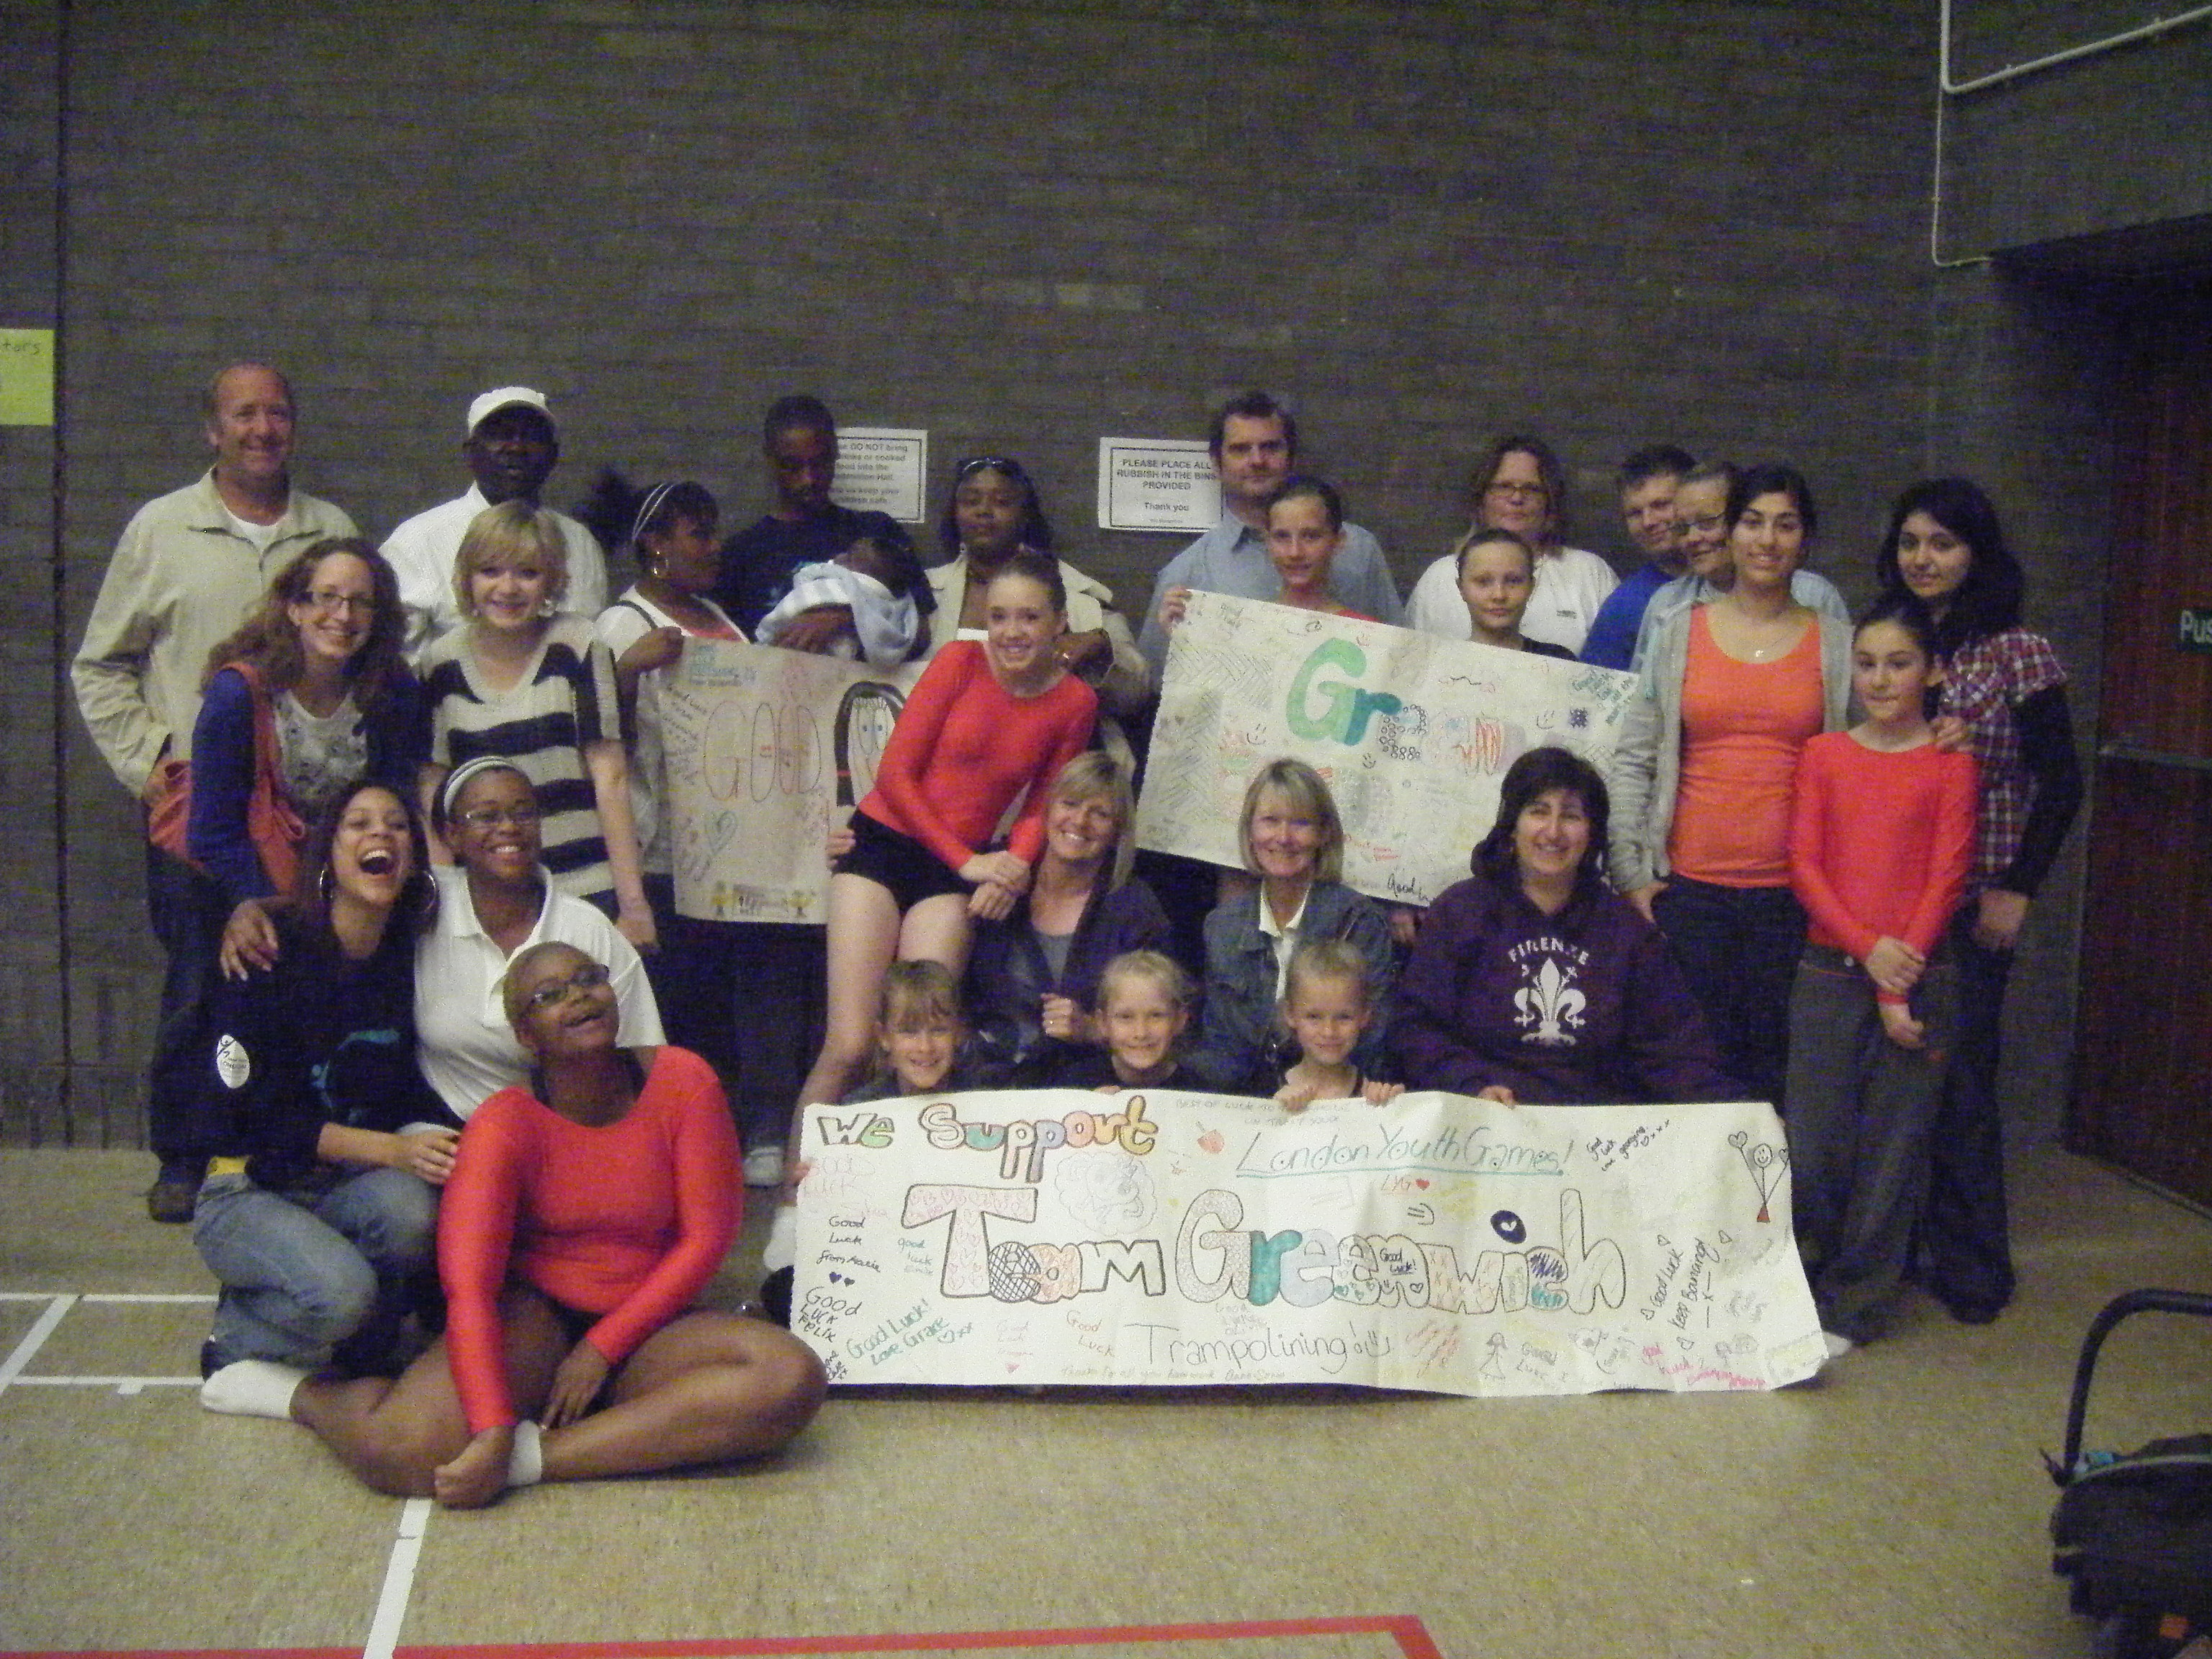 The Squad, family and friends supporting us at London Youth Games 2009